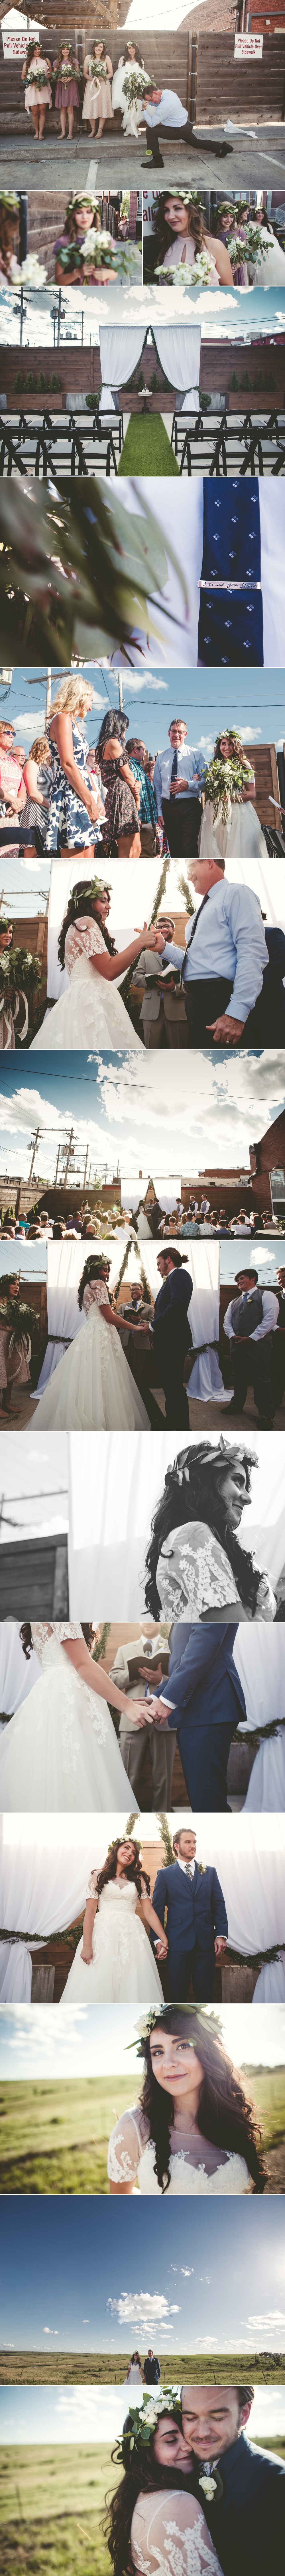 jason_domingues_photography_best_kansas_city_wedding_photographer_manhattan_ks_aggieville_upp_2